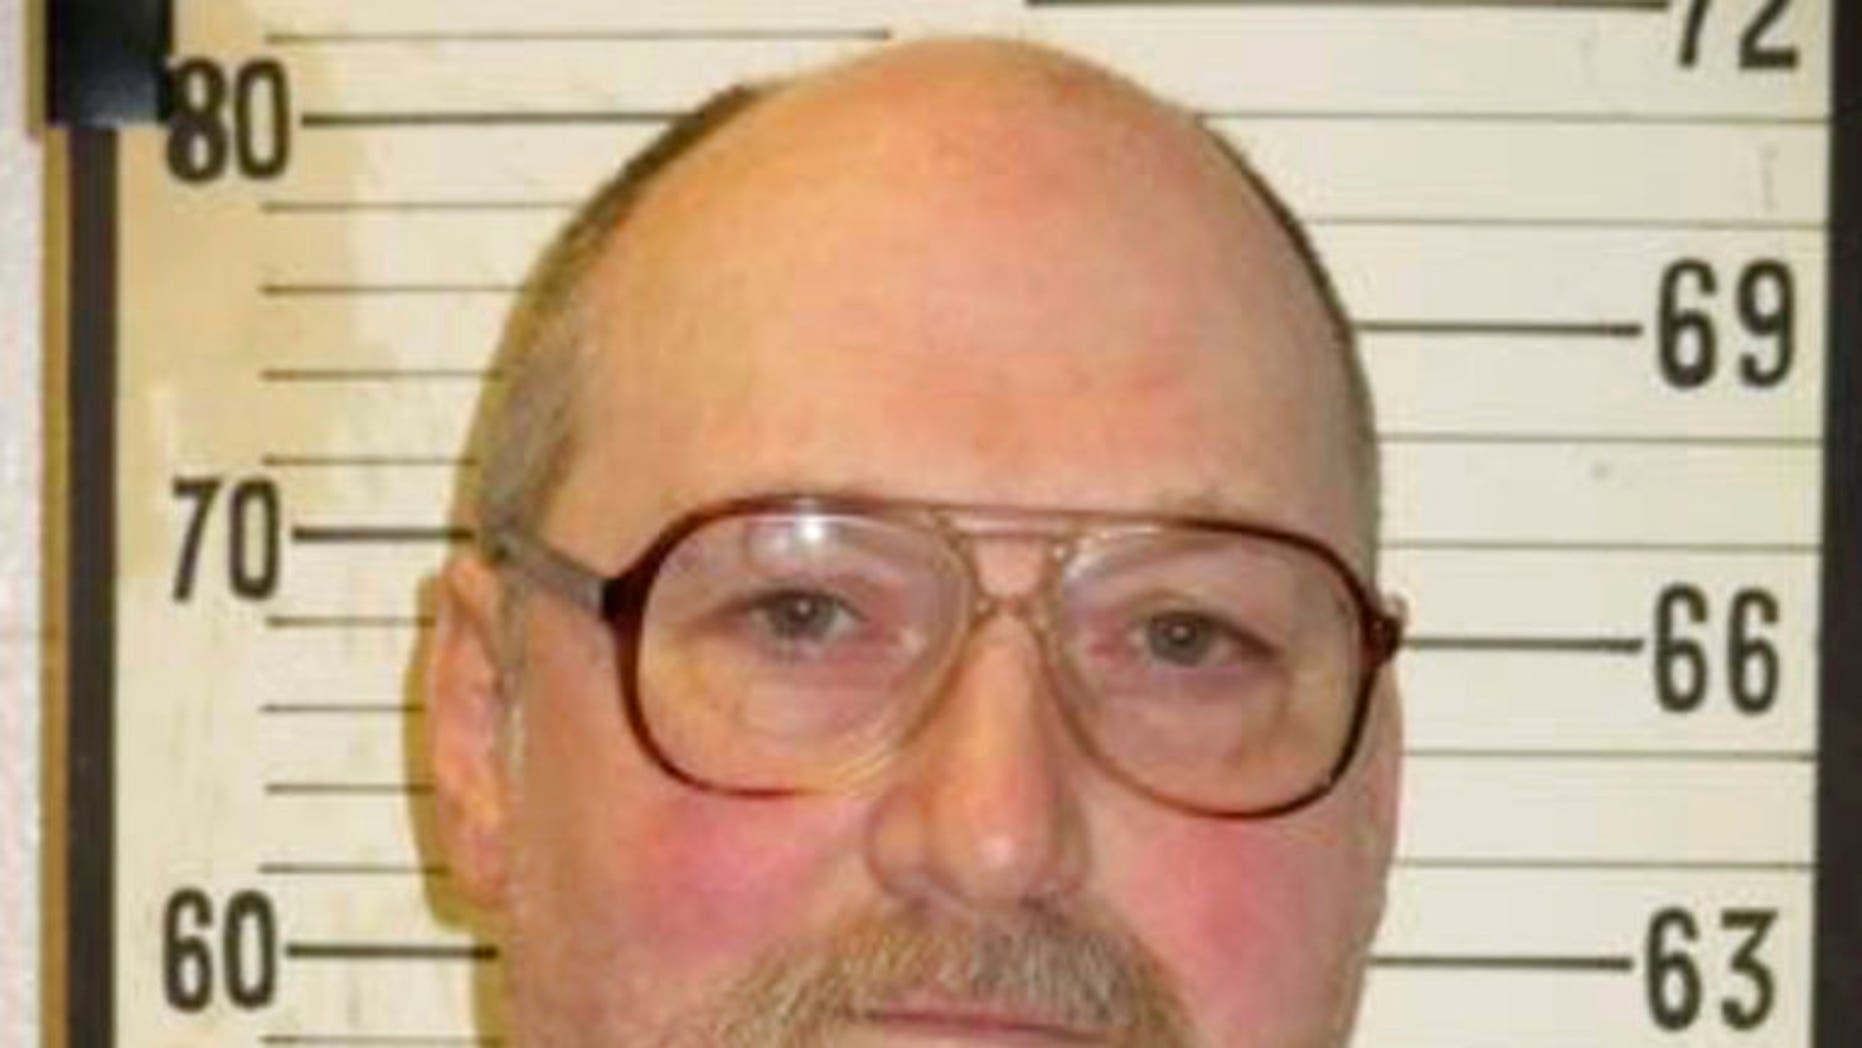 Death row inmate David Earl Miller is scheduled to die by electric chair on Thursday.